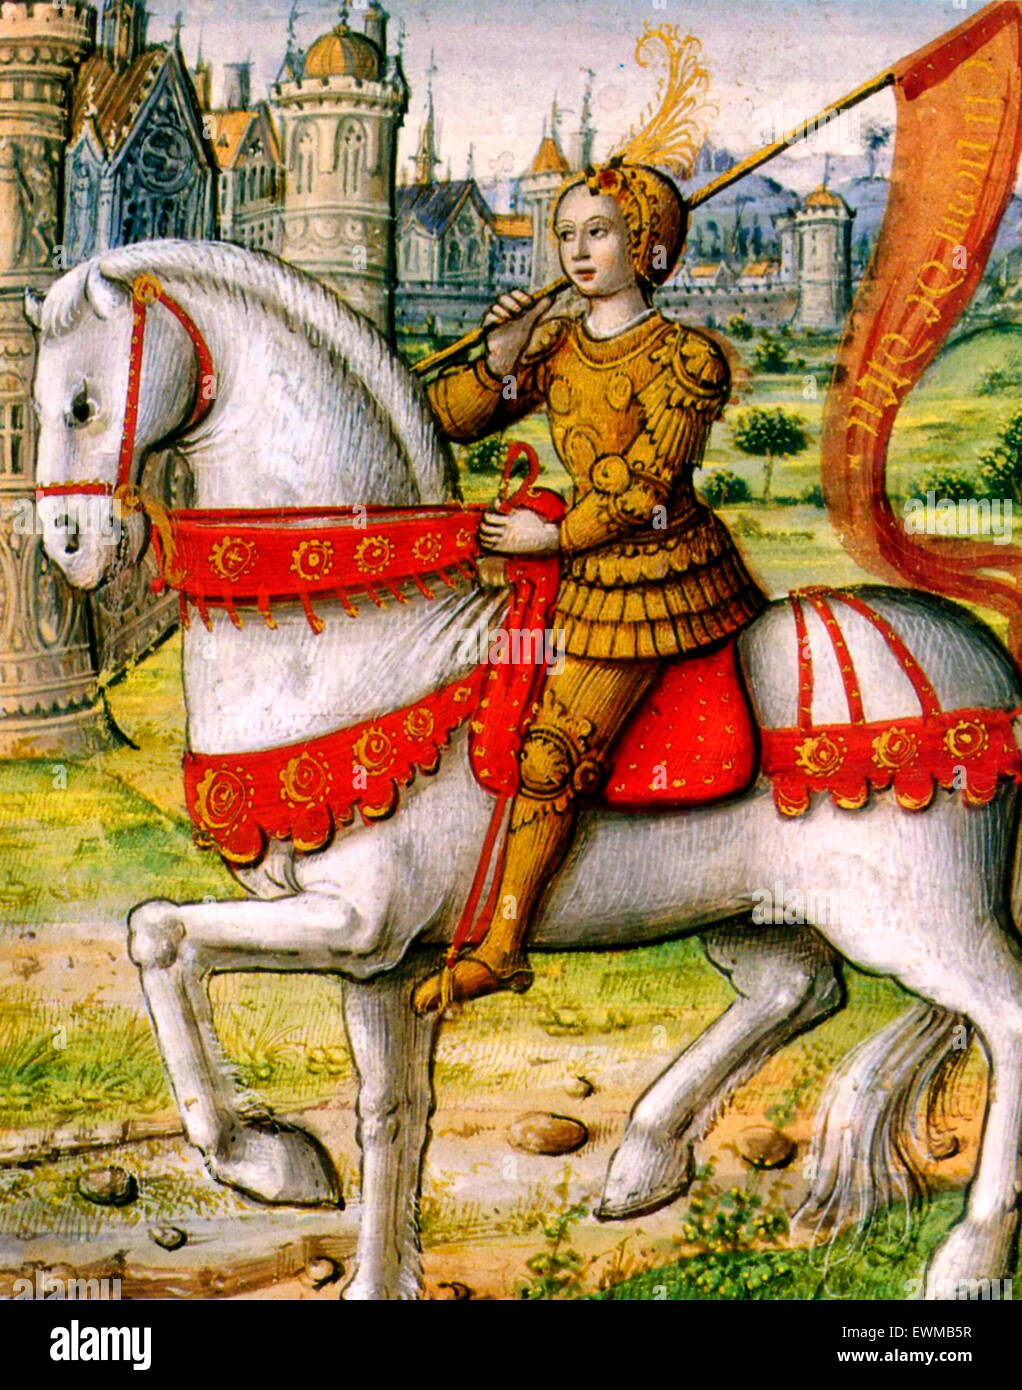 Joan of Arc depicted on horseback in an illustration from a 1505 manuscript. - Stock Image